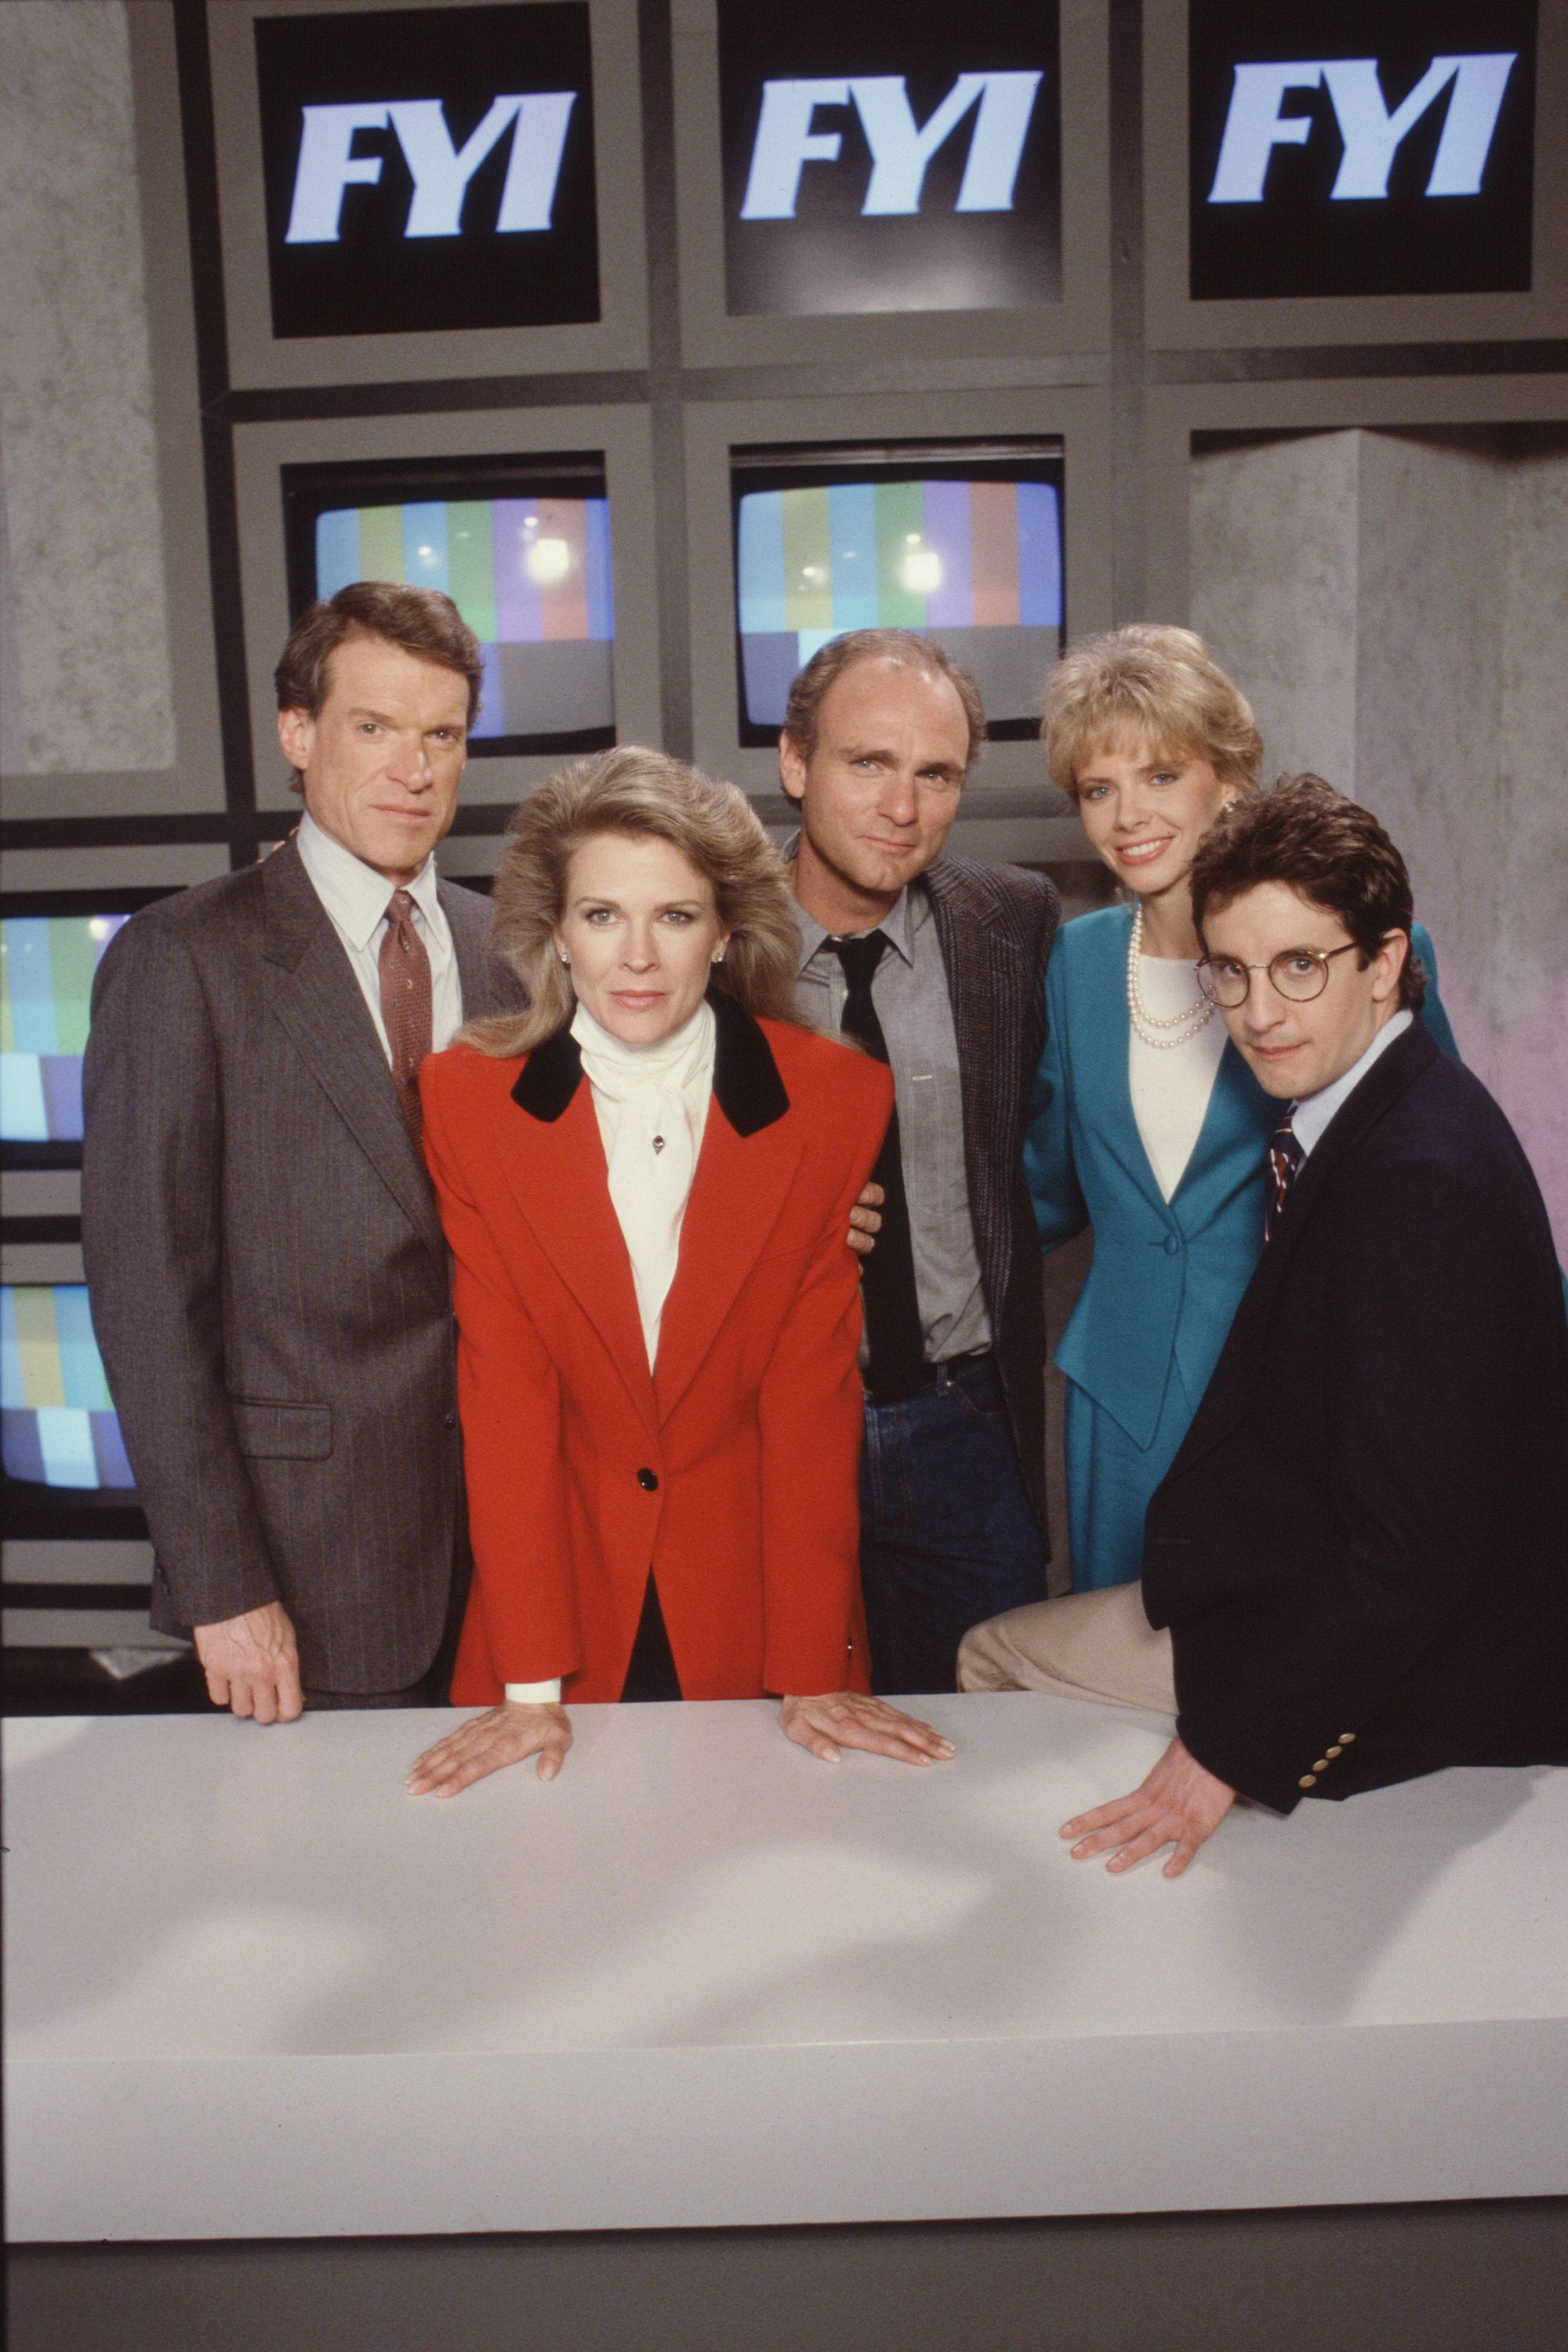 LOS ANGELES - NOVEMBER 14: MURPHY BROWN. (from left) Charles Kimbrough as Jim Dial, Candice Bergen as Murphy Brown, Joe Regalbuto as Frank Fontana, Faith Ford as Corky Sherwood and Grant Shaud as Miles Silverberg in pilot episode, 'Respect'. Air date November 14, 1988. (Photo by CBS via Getty Images)